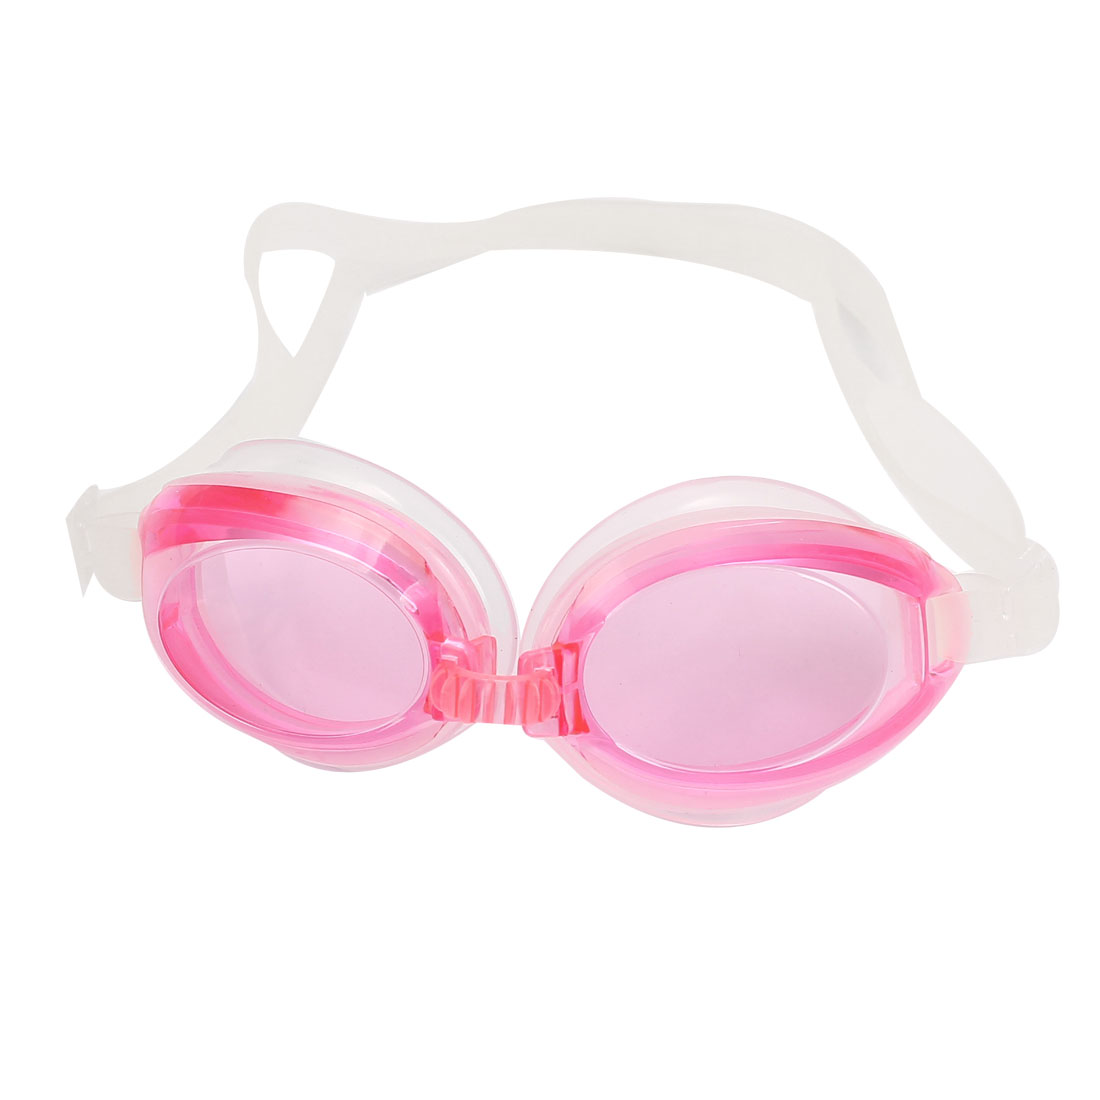 Adults Pink Plastic Frame Oval Shaped Lens Stretchy Adjustable Strap Swimming Eyeglasses Goggles w Spectacle Case